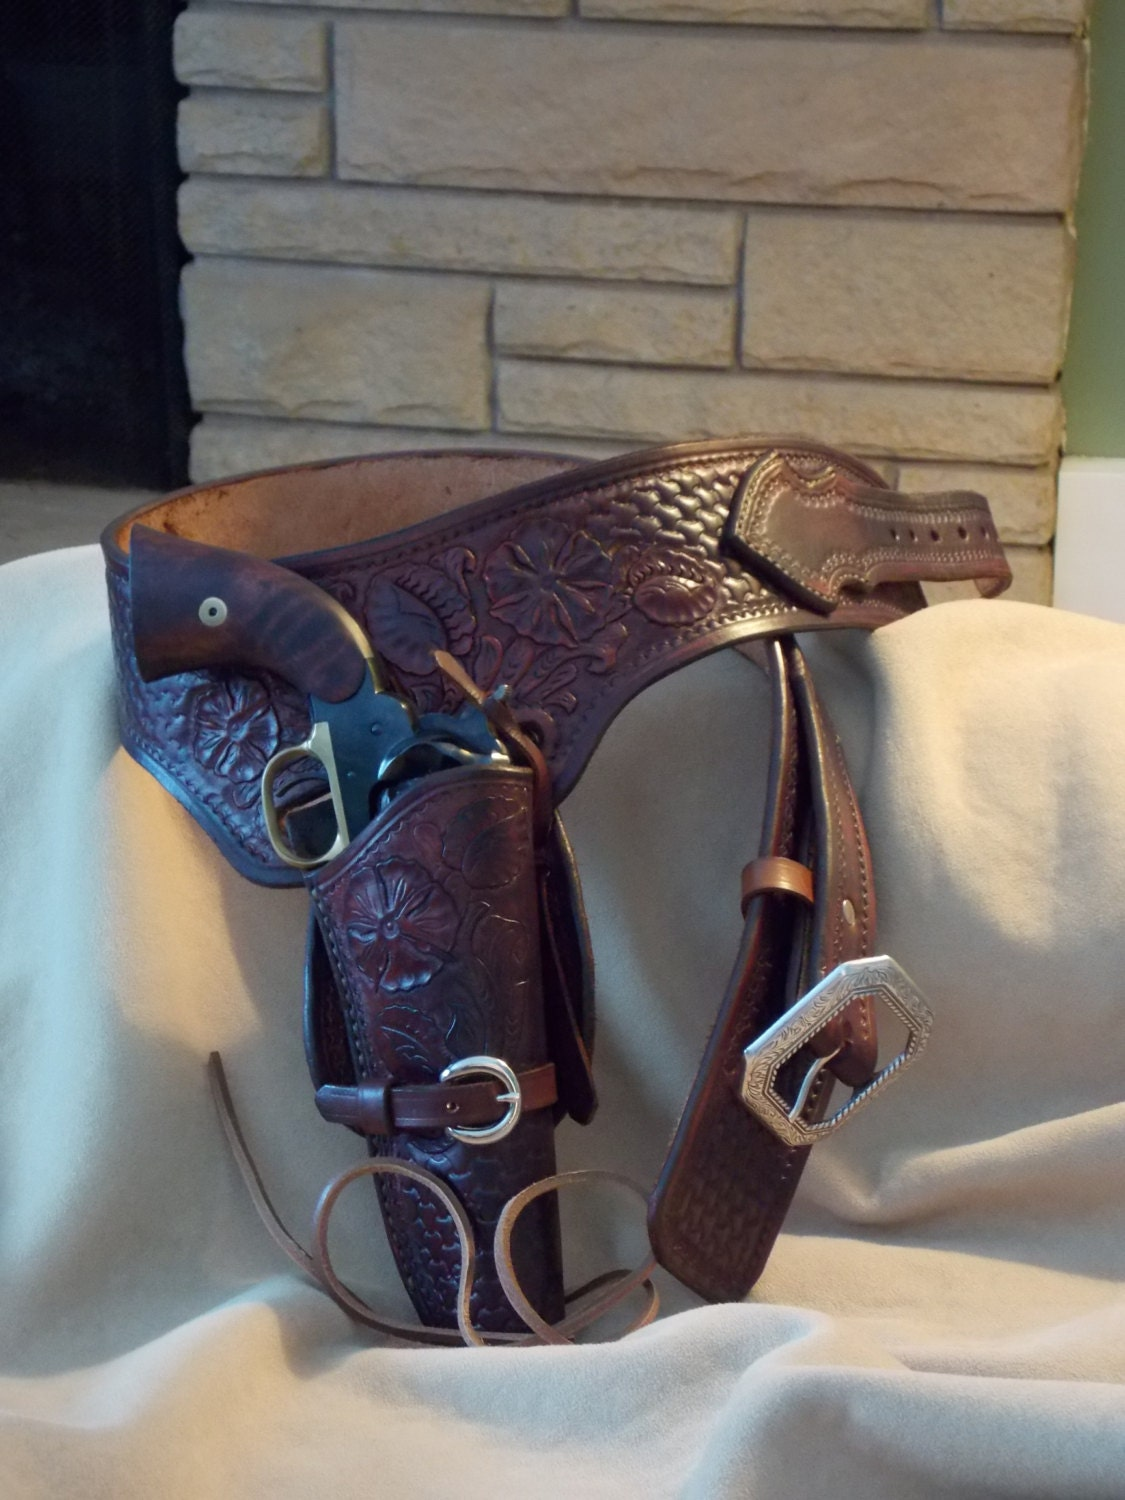 tooled leather gun belt and holster